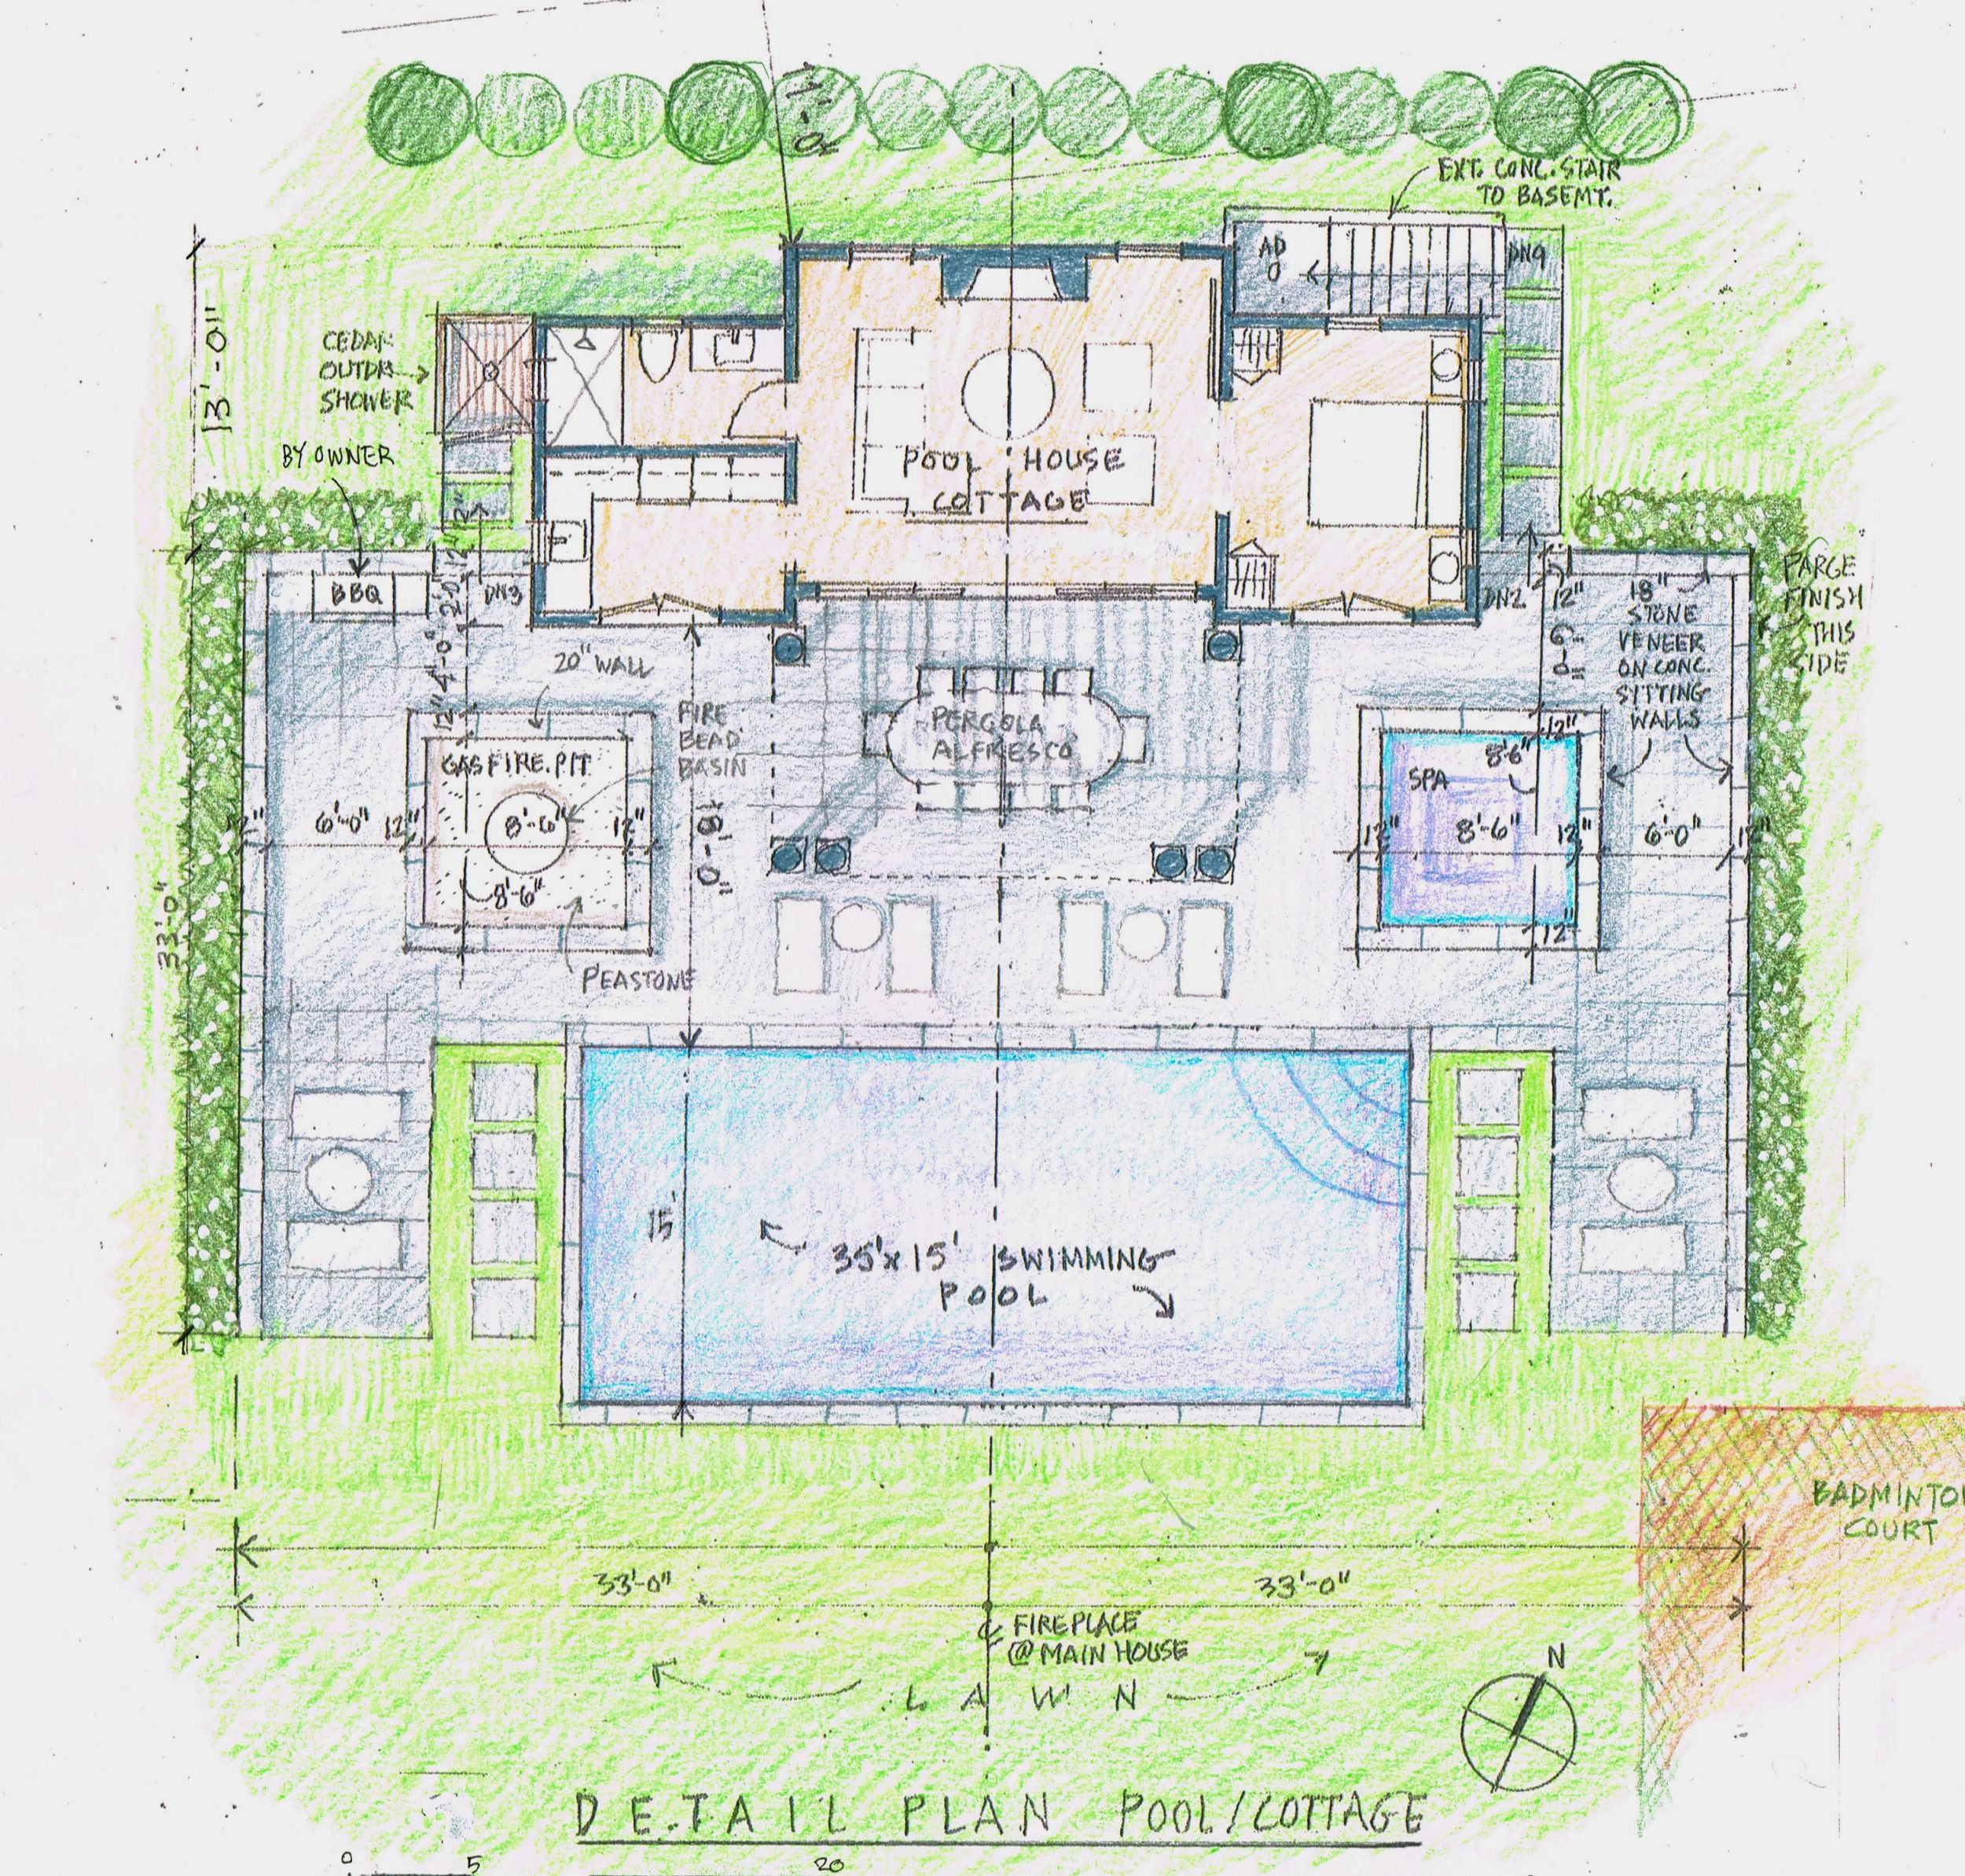 Plan. - Once Stephen has completed your design, he will submit his drawings to the designated planning authorities for approval. Living on-island allows him to communicate directly with the relevant officials and facilitate each step in this technical process.